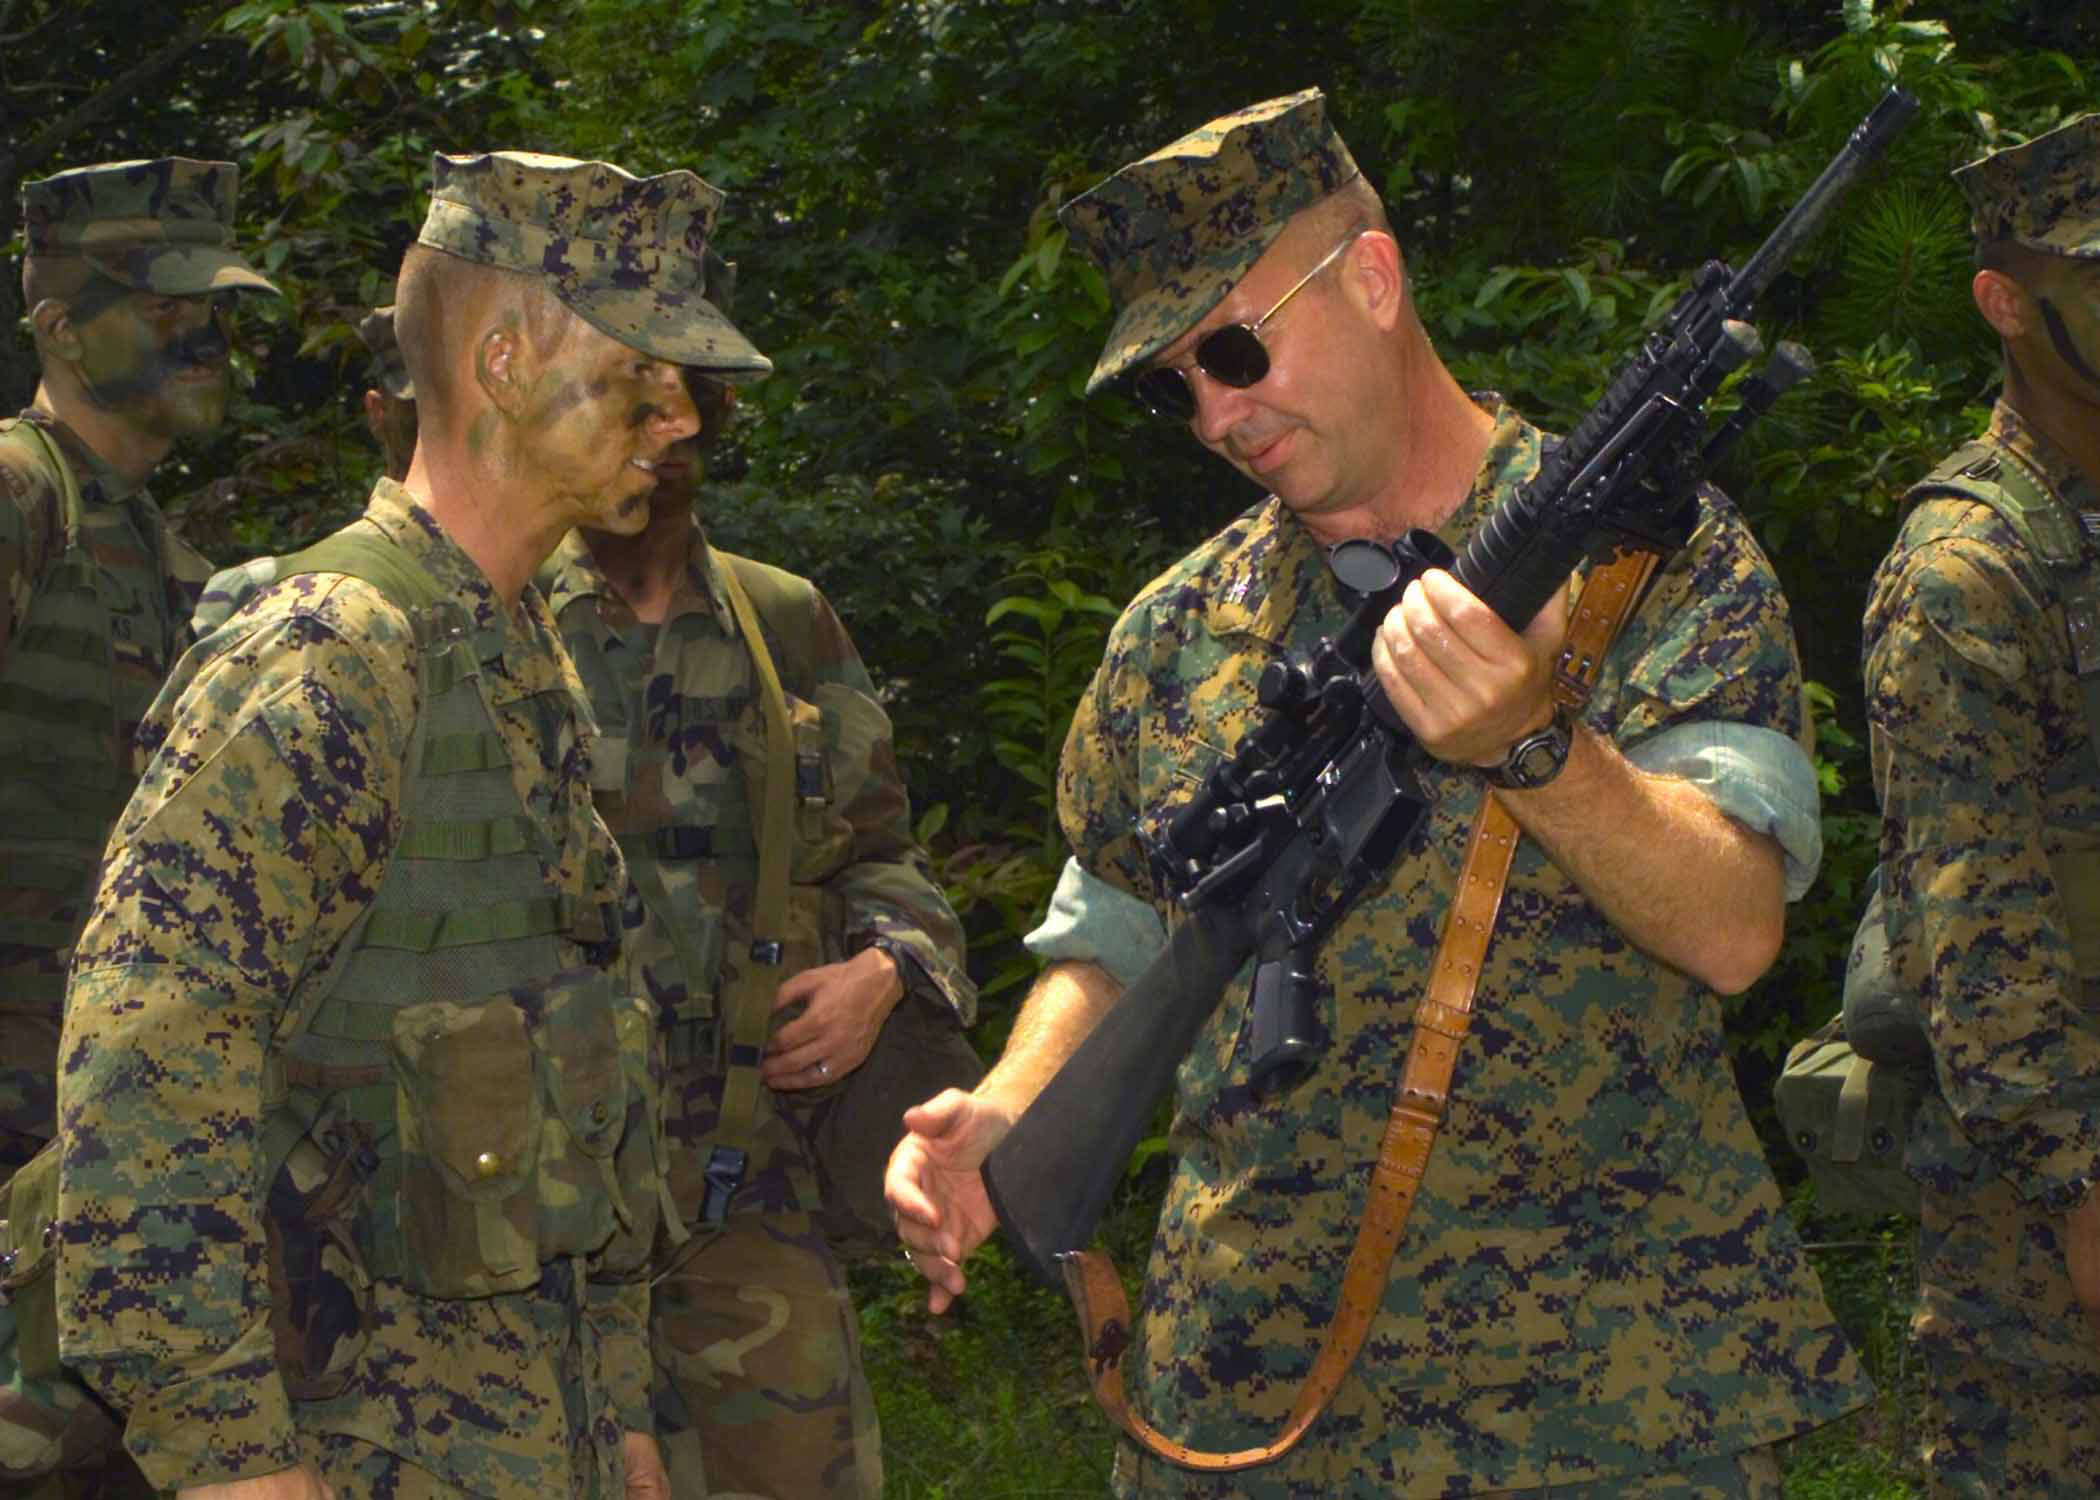 File:Marines-with-sniper-rifle-3.jpg - Wikimedia Commons